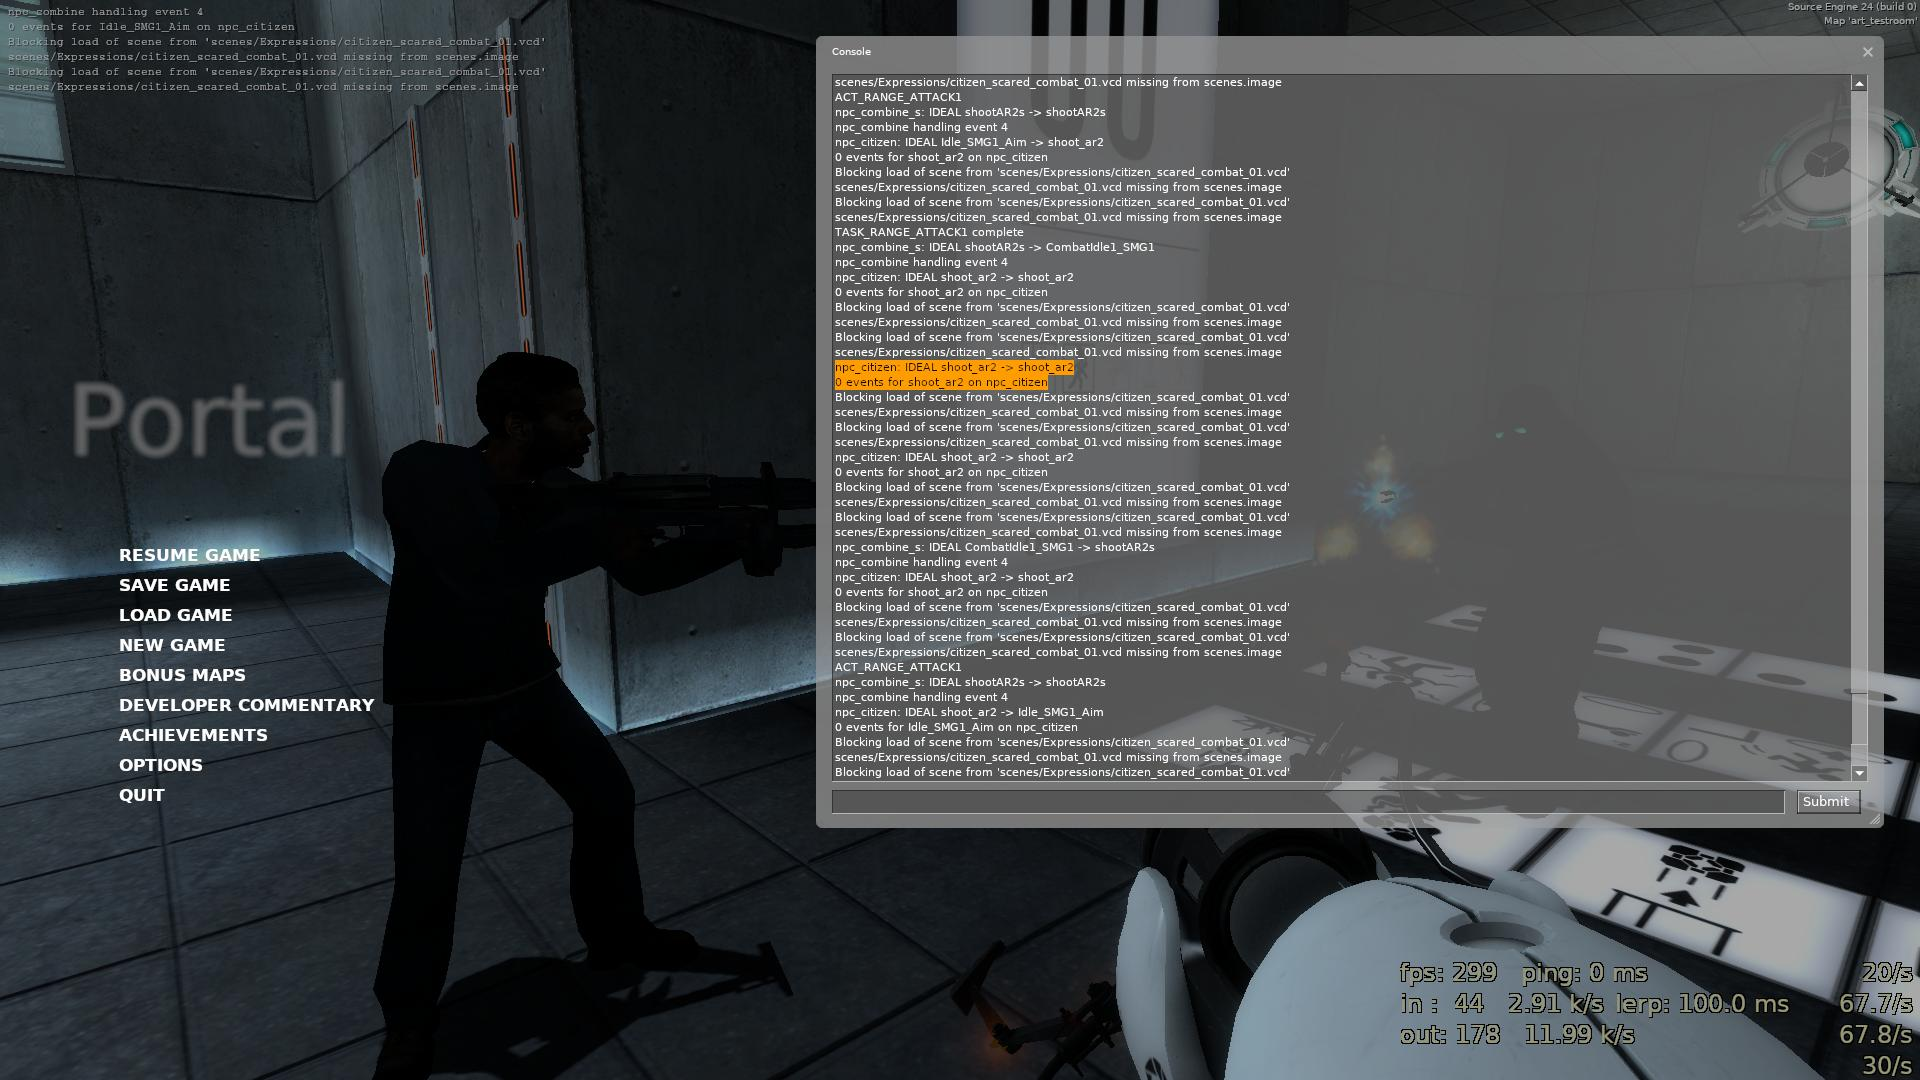 Diagnostic messages in a Portal binary